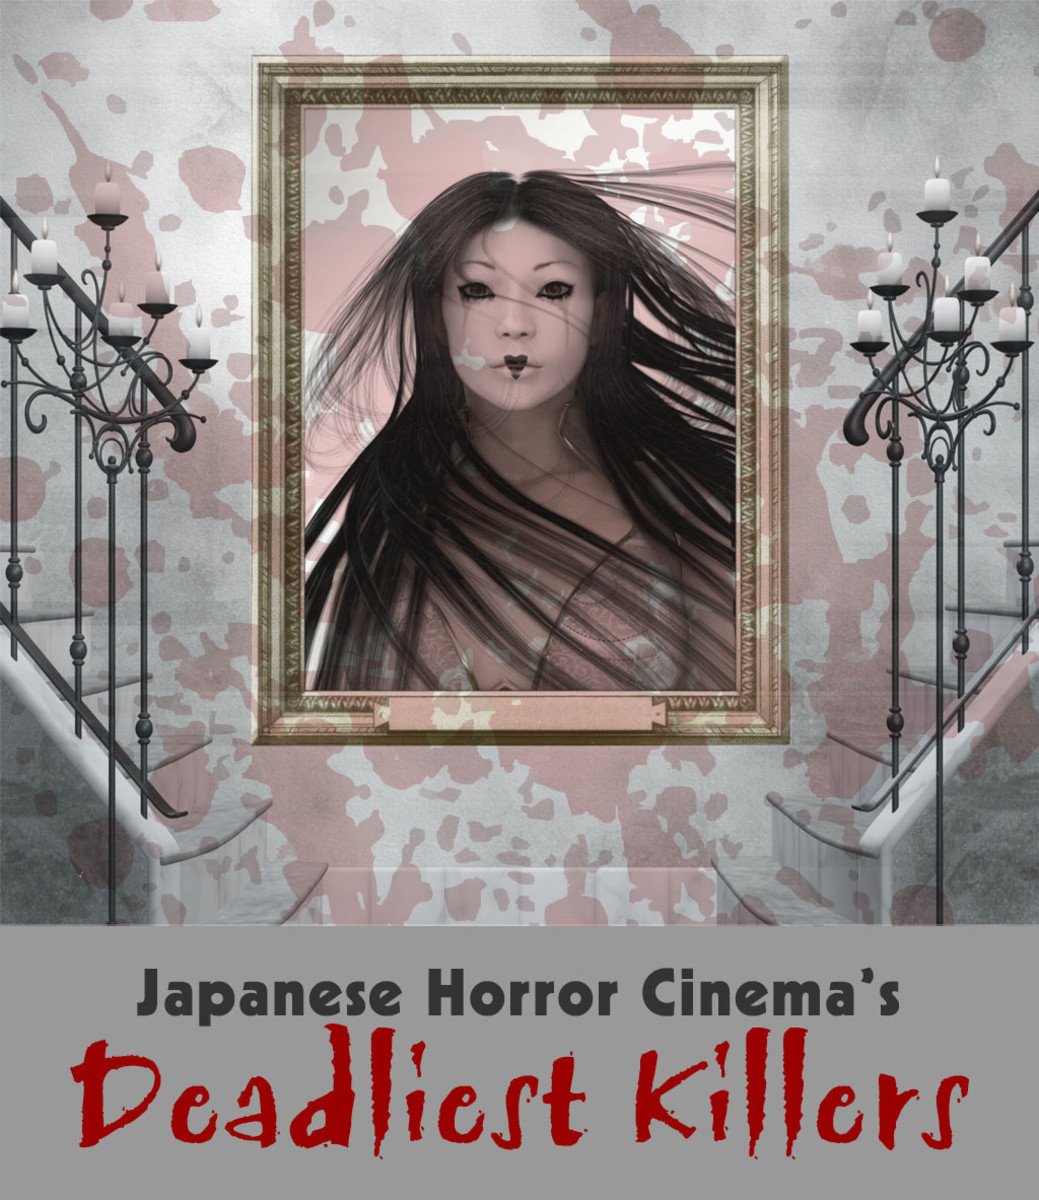 The kings and queens of murder of Japanese horror cinema.